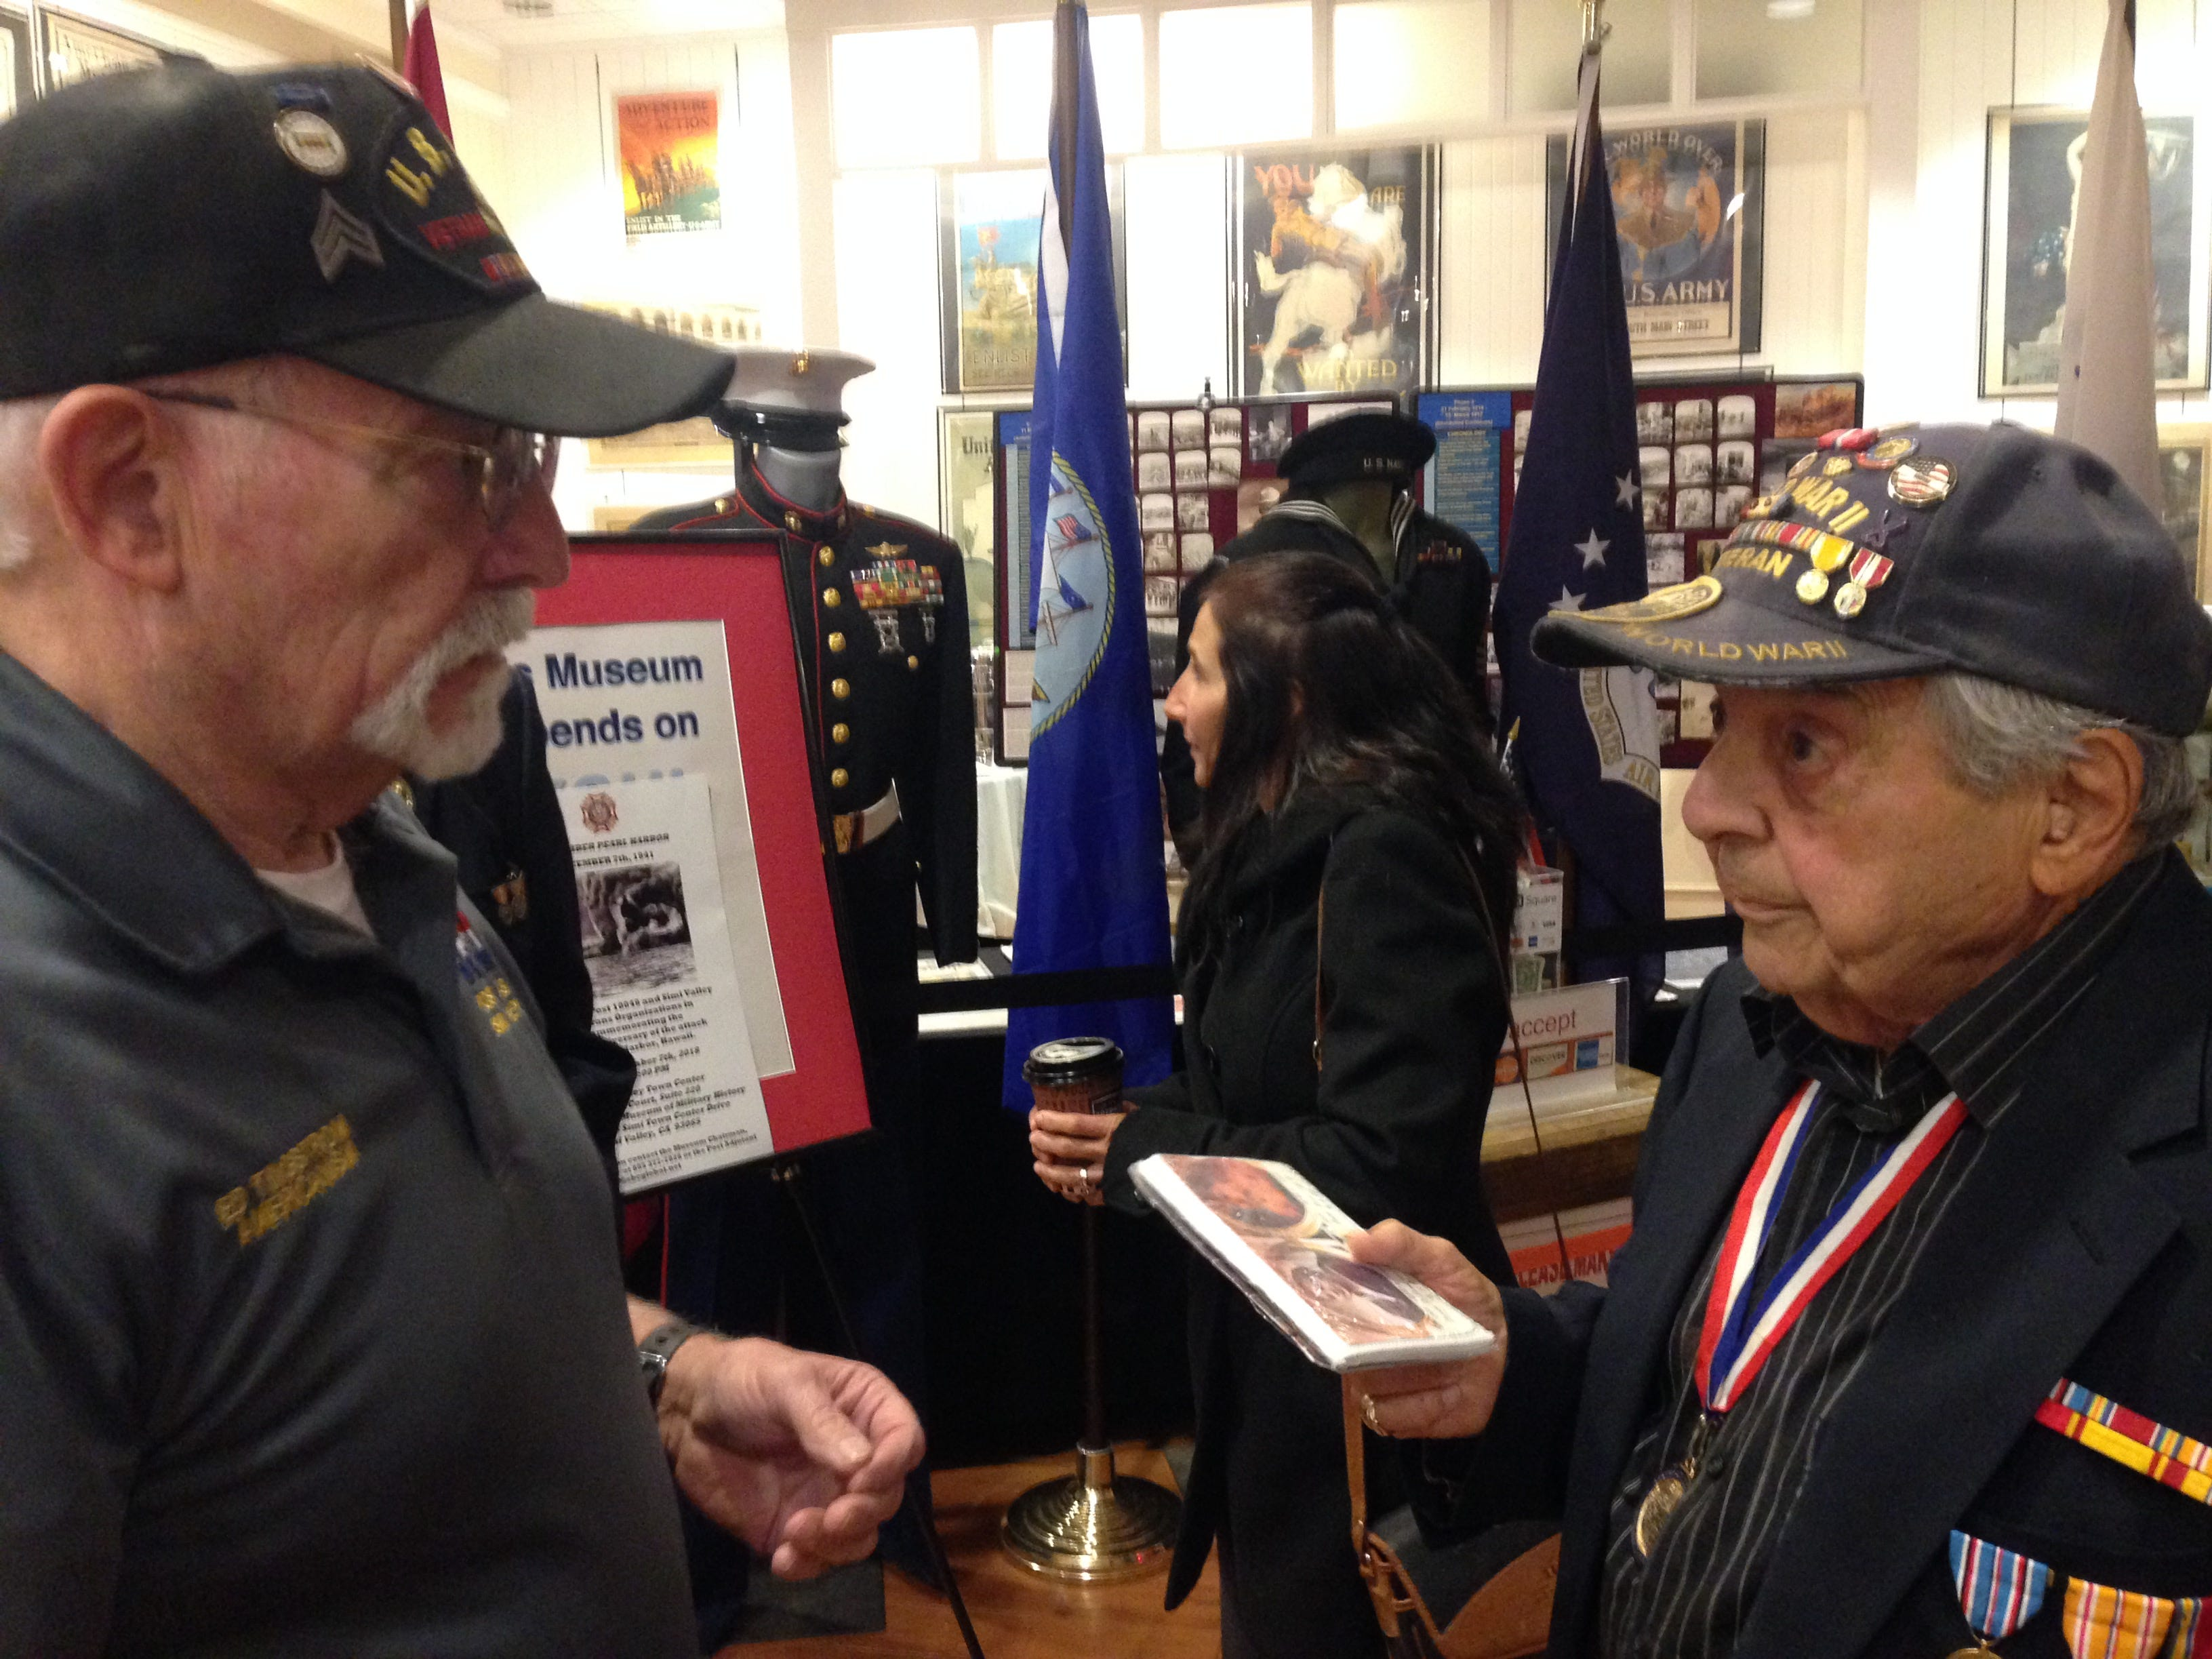 Ed Tingstrom, a United States Army Vietnam combat veteran who is also an educator, published author and military historian, talks with Barney P. Leone, a 94-year-old veteran of World War II. The two men were guest speakers at a commemoration of the 77th anniversary of the attack at Pearl Harbor, Hawaii. The event took place at the VFW Museum of Military History in Simi Valley on Dec. 7.